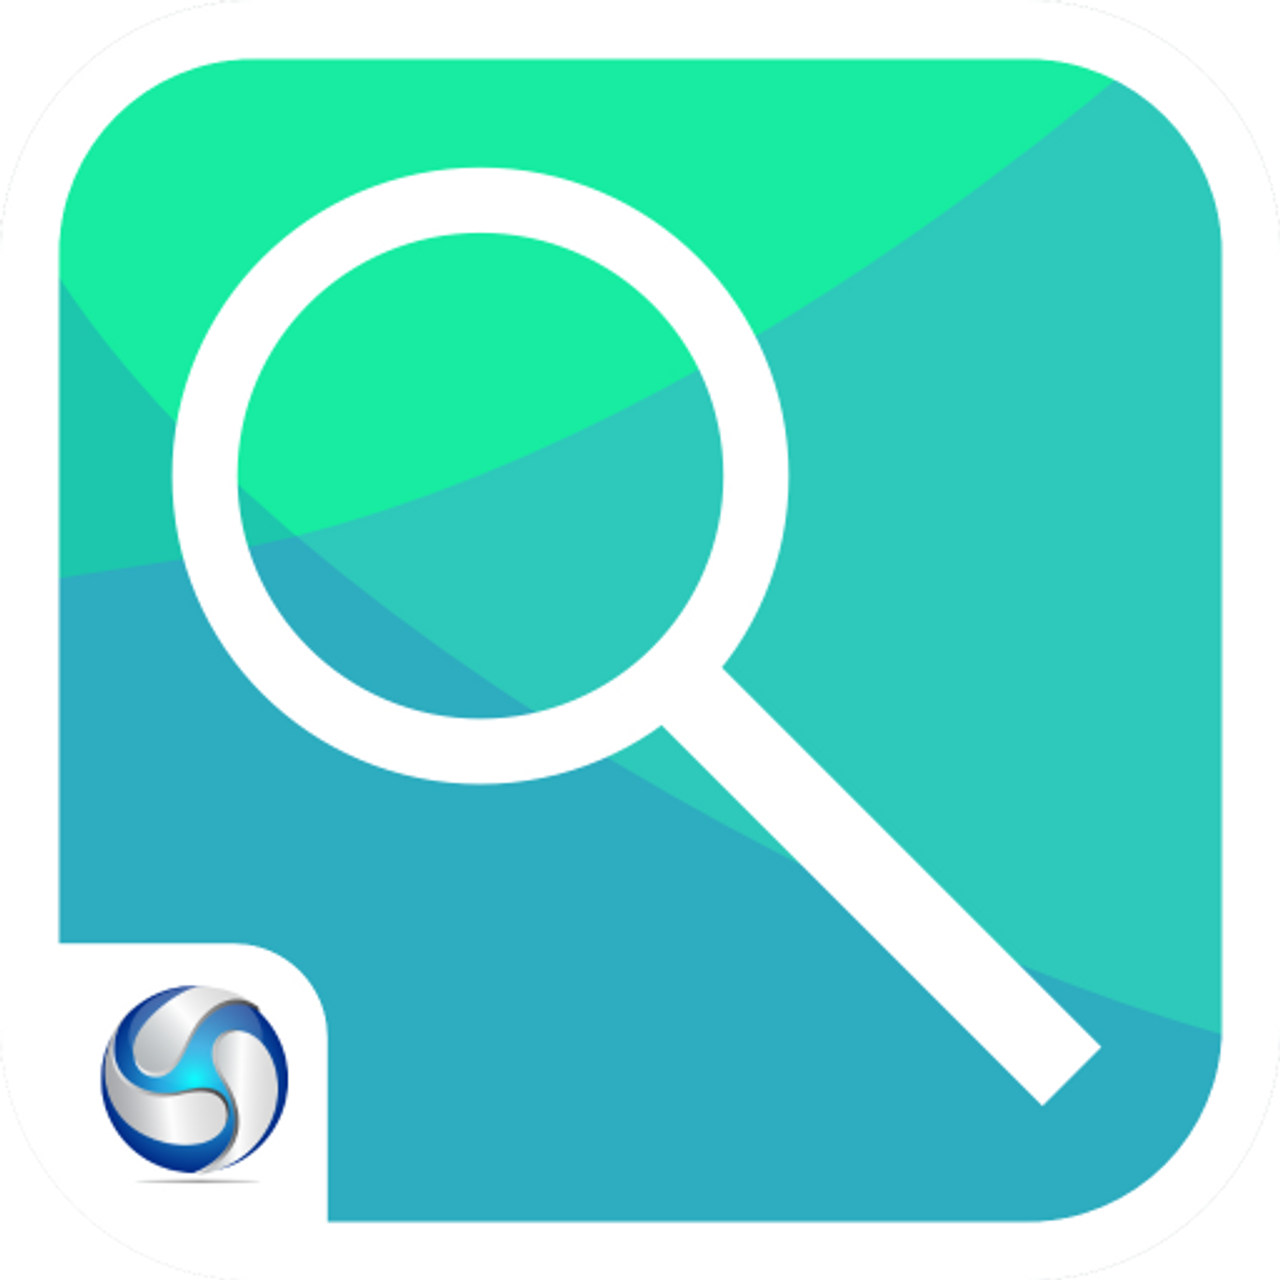 Product LookUp App - Retail Barcode apps - Barcodes com au